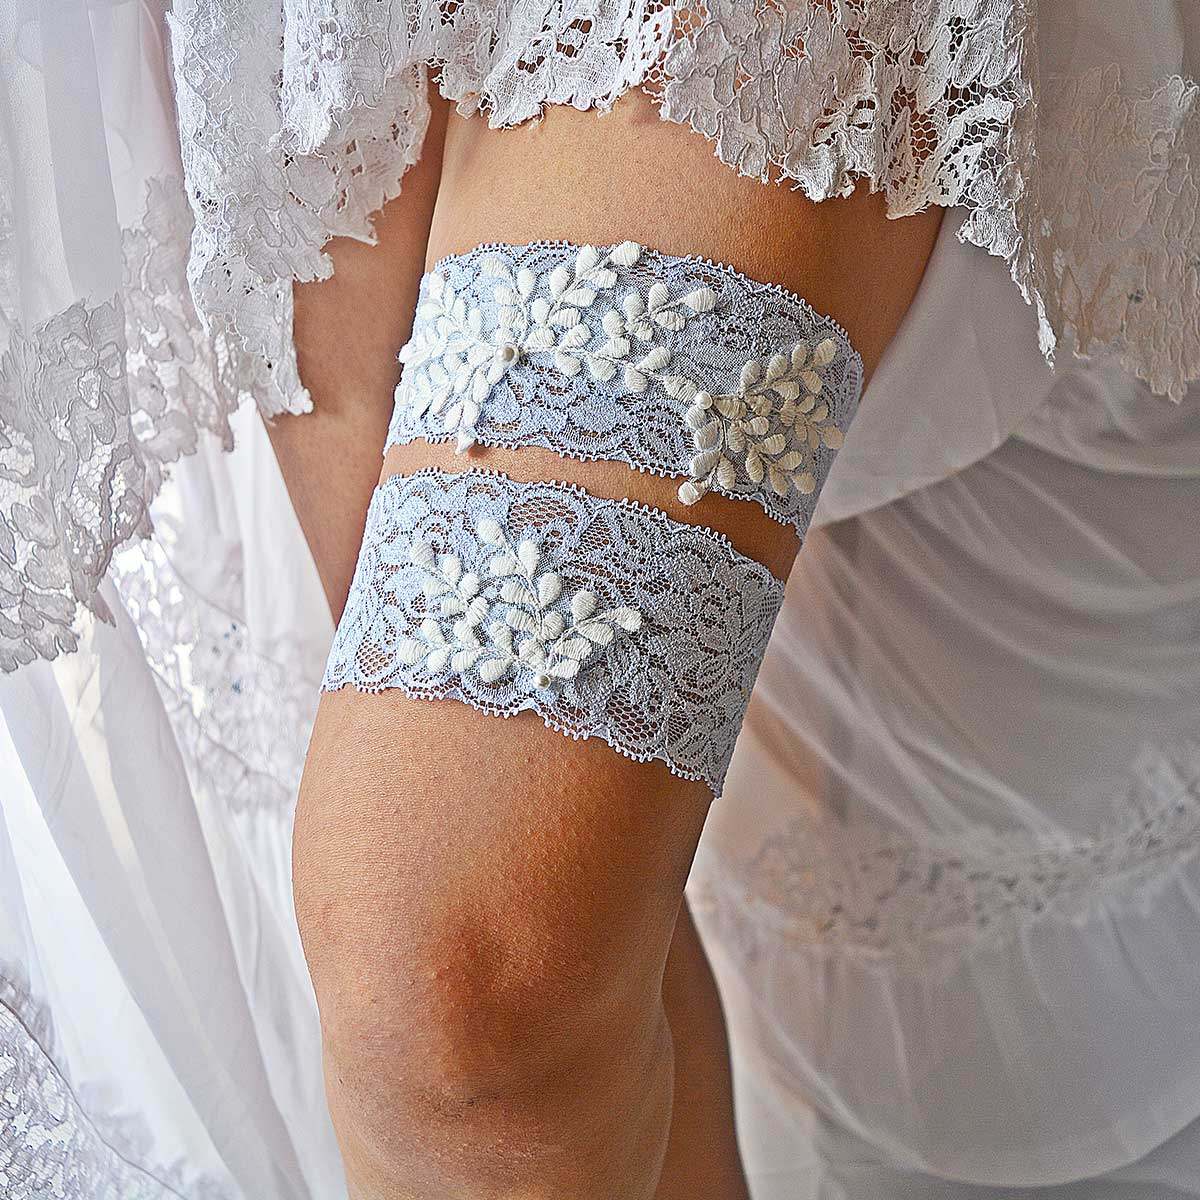 Pale Blue Bridal Garter With Pearls & White Applique Lace